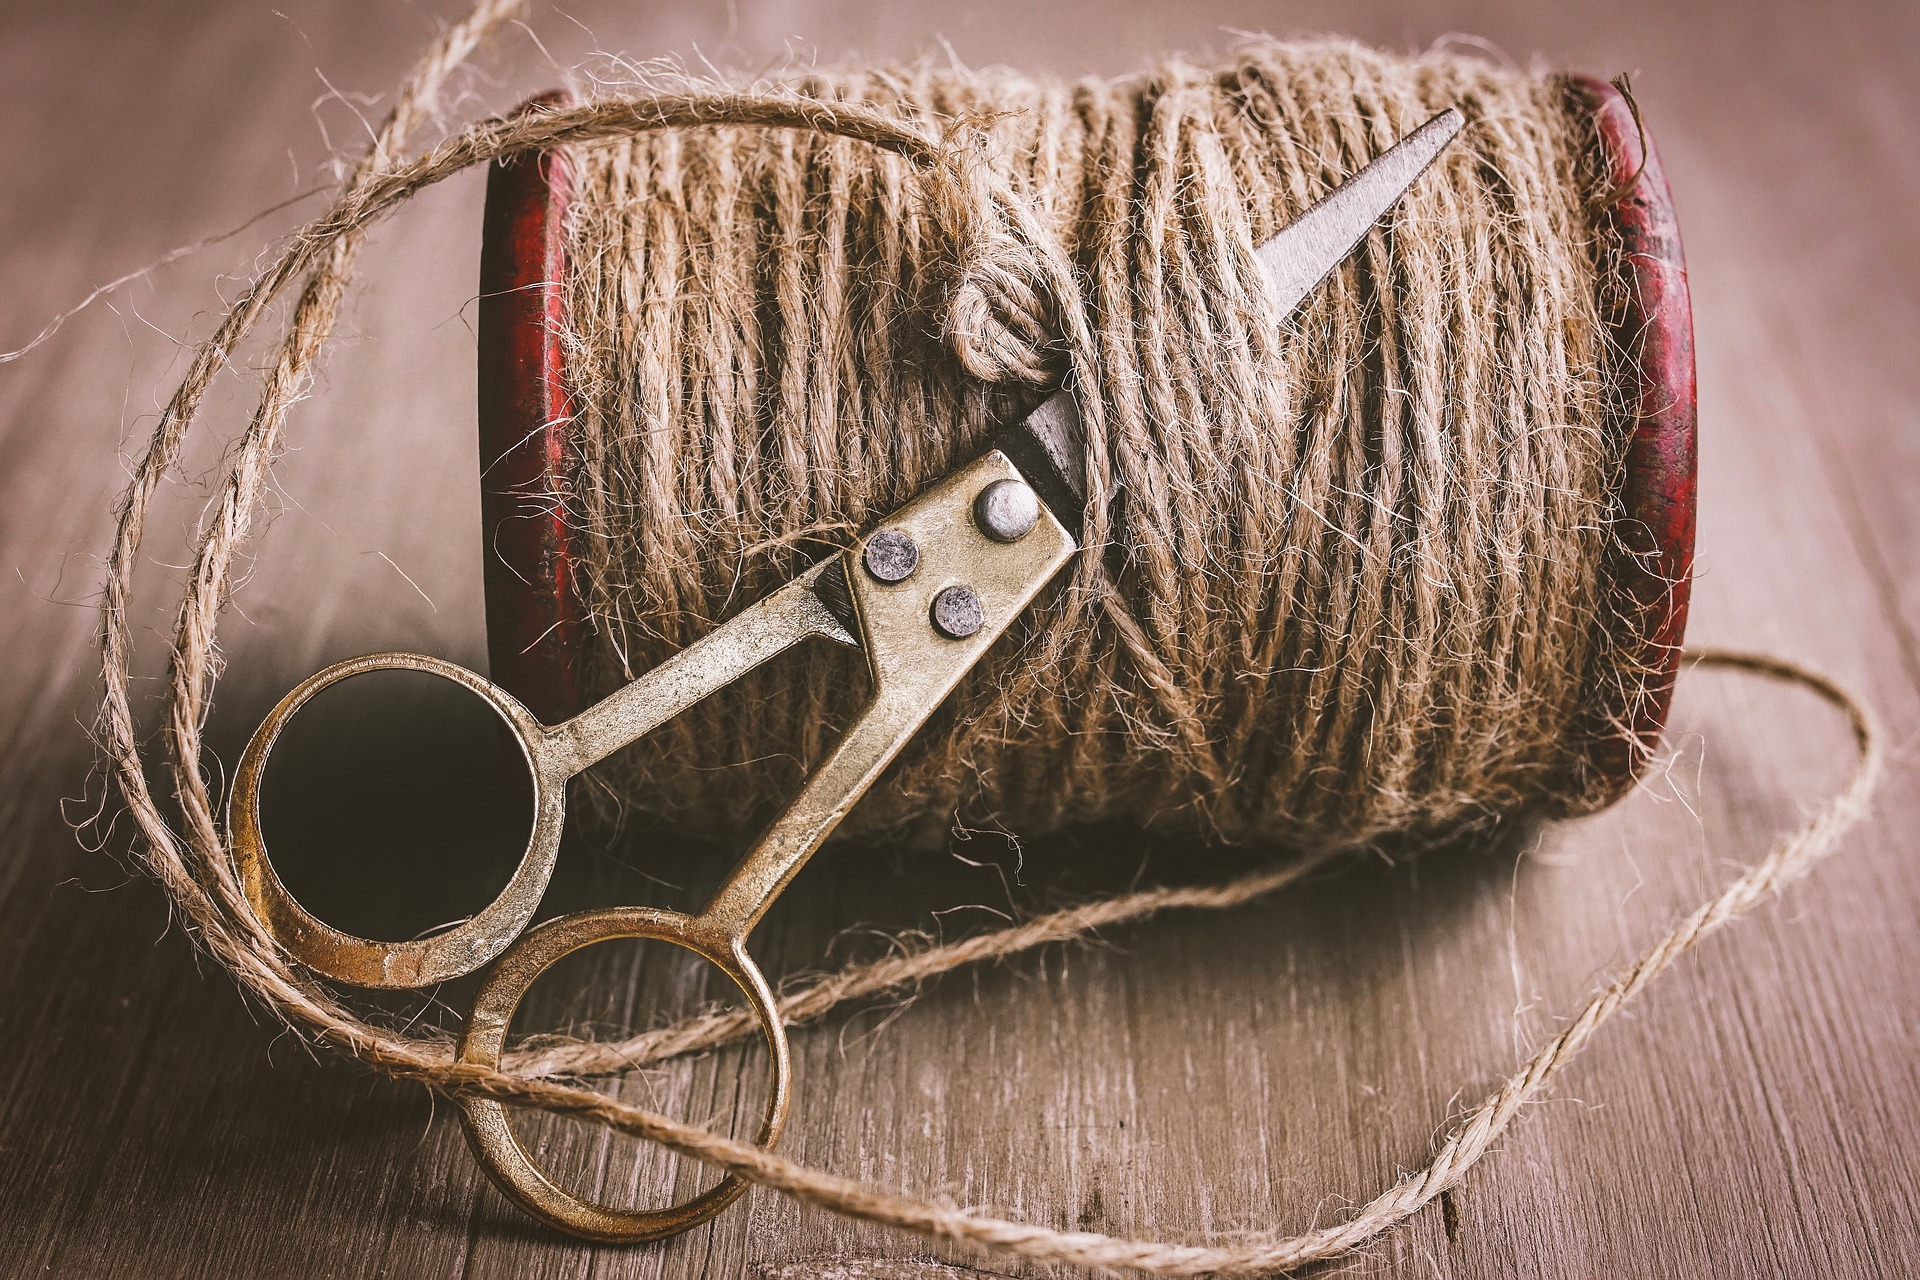 A roll of hemp cord with scissors